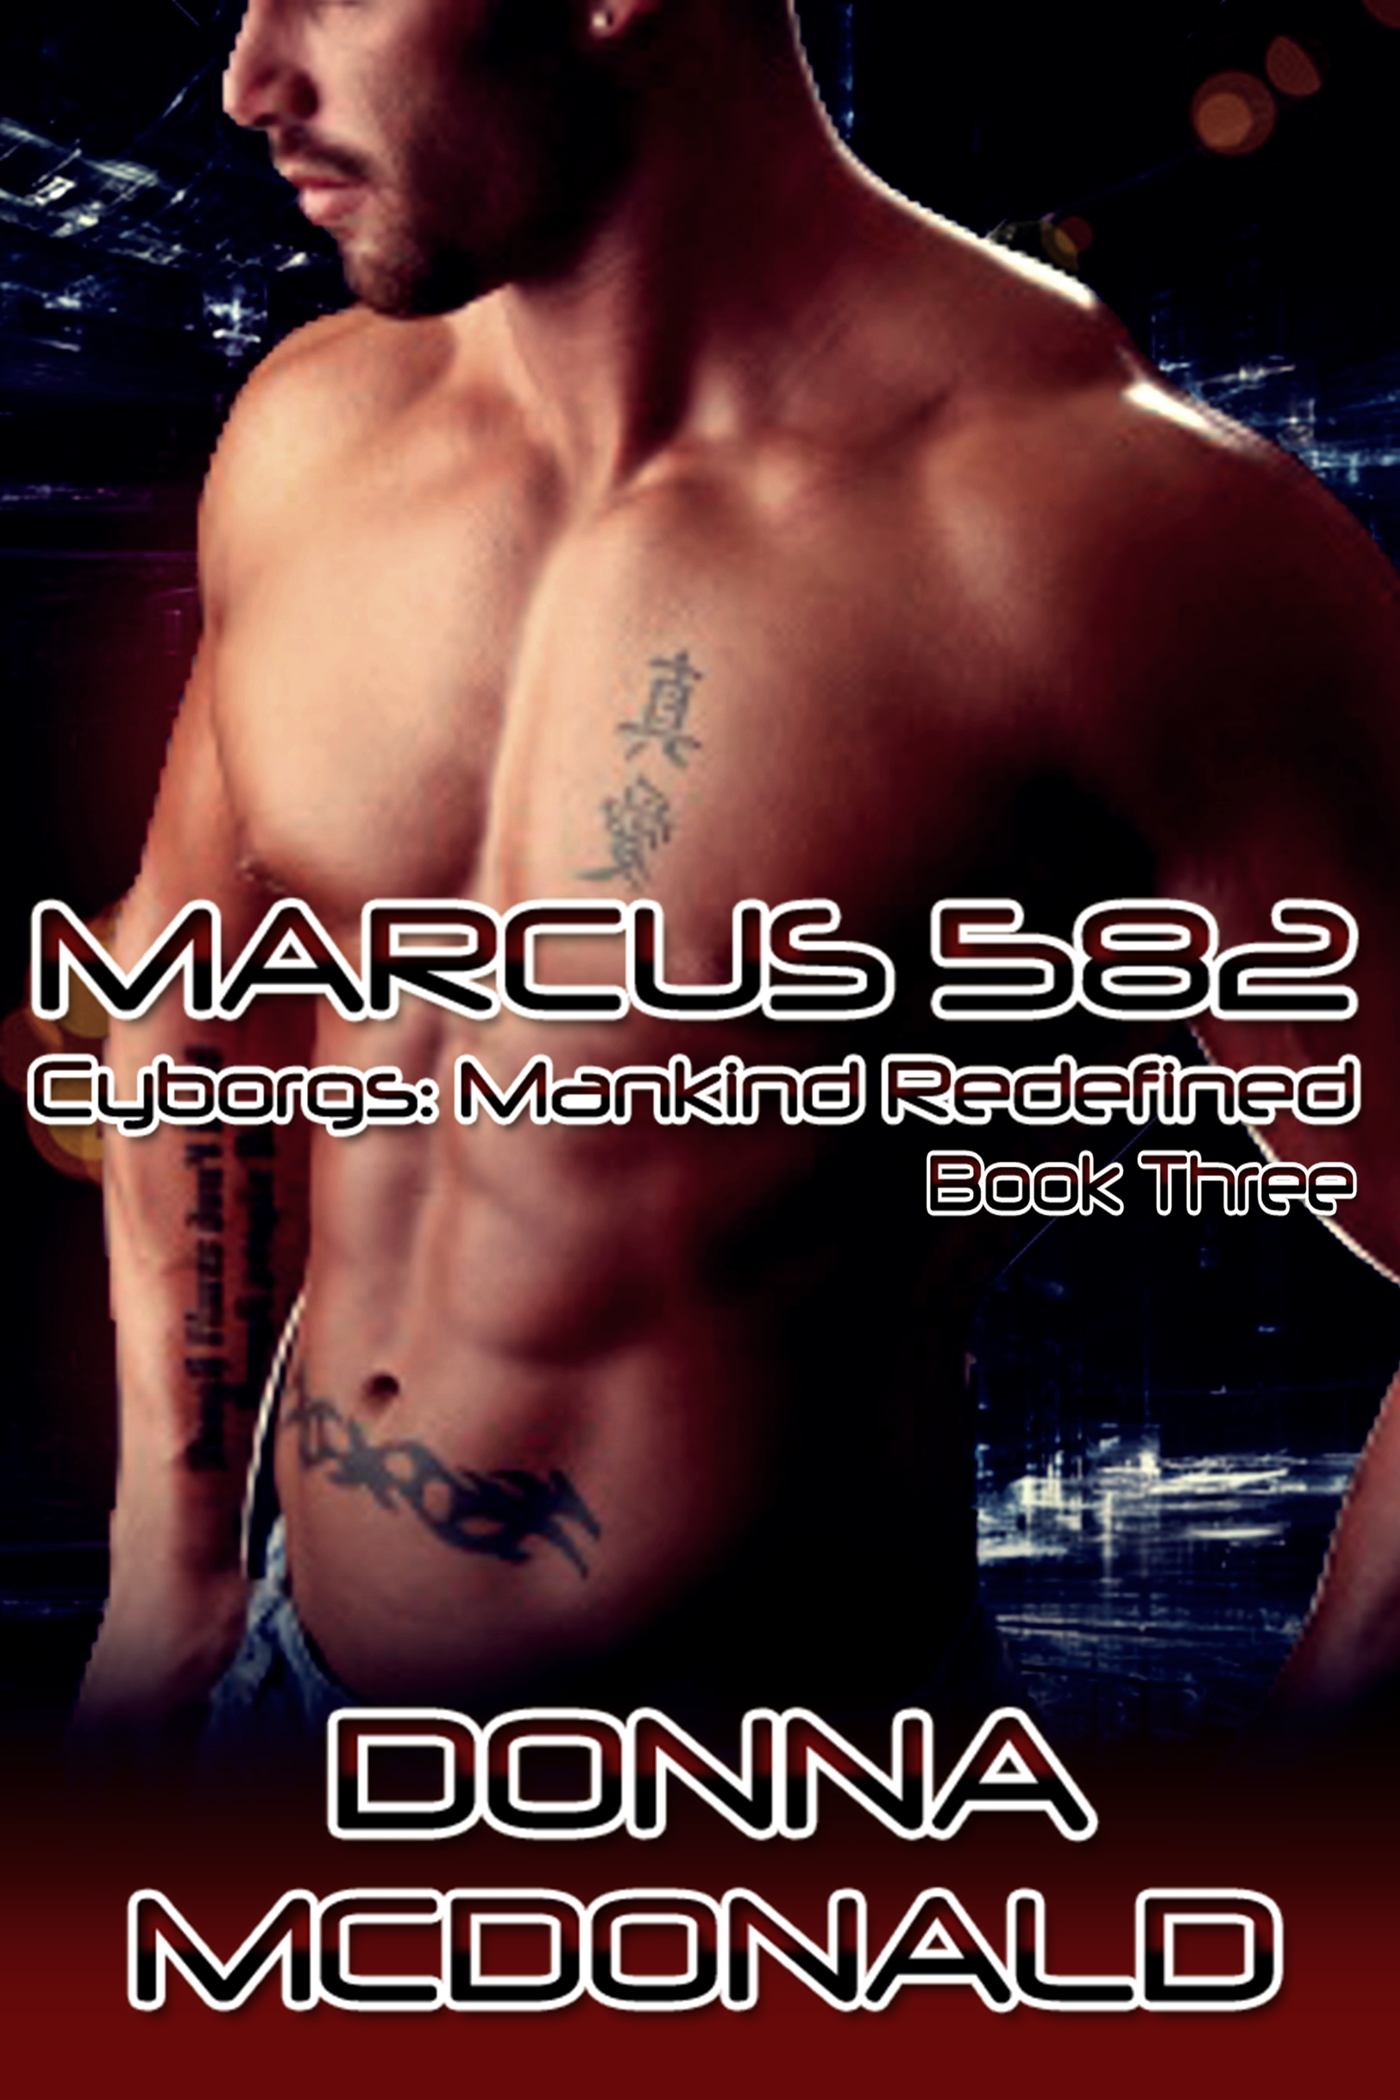 marcus, cyborgs, science fiction, paranormal, genetic engineering